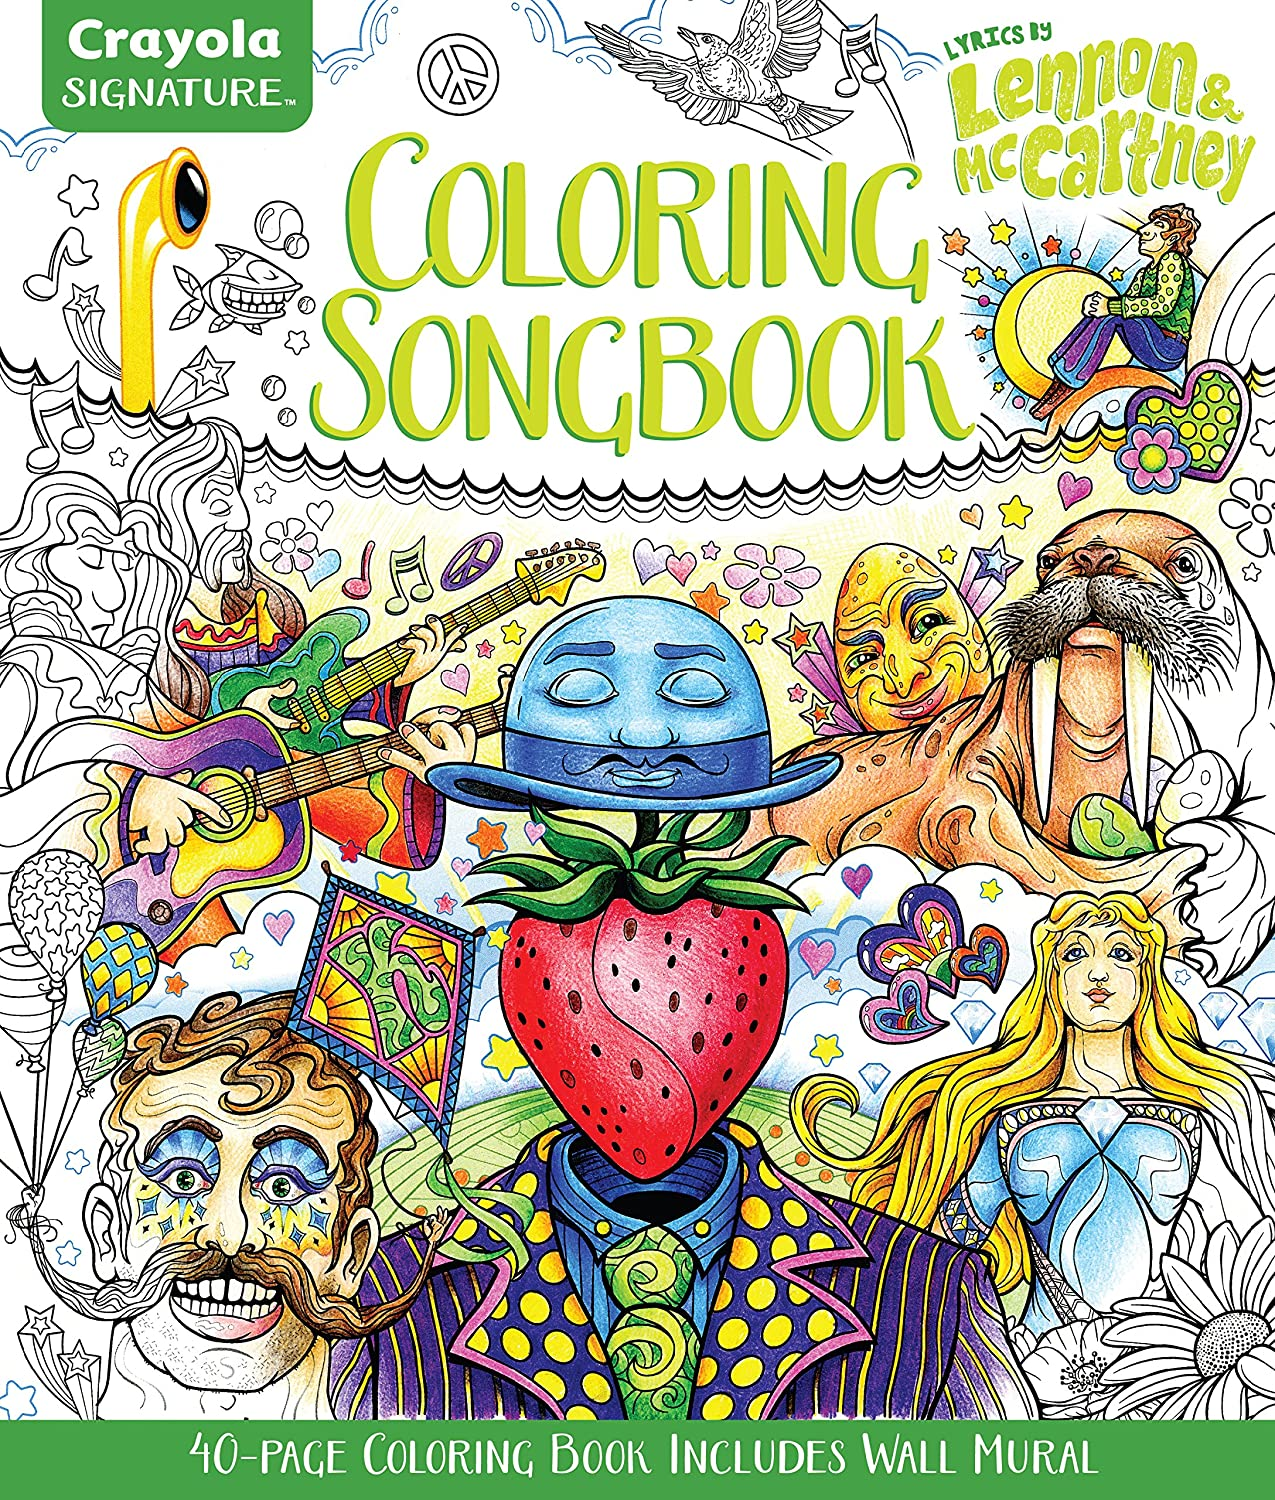 Crayola Coloring Songbook, Lyrics of John Lennon & Paul McCartney, Adult  Coloring Gift, 40 Pages